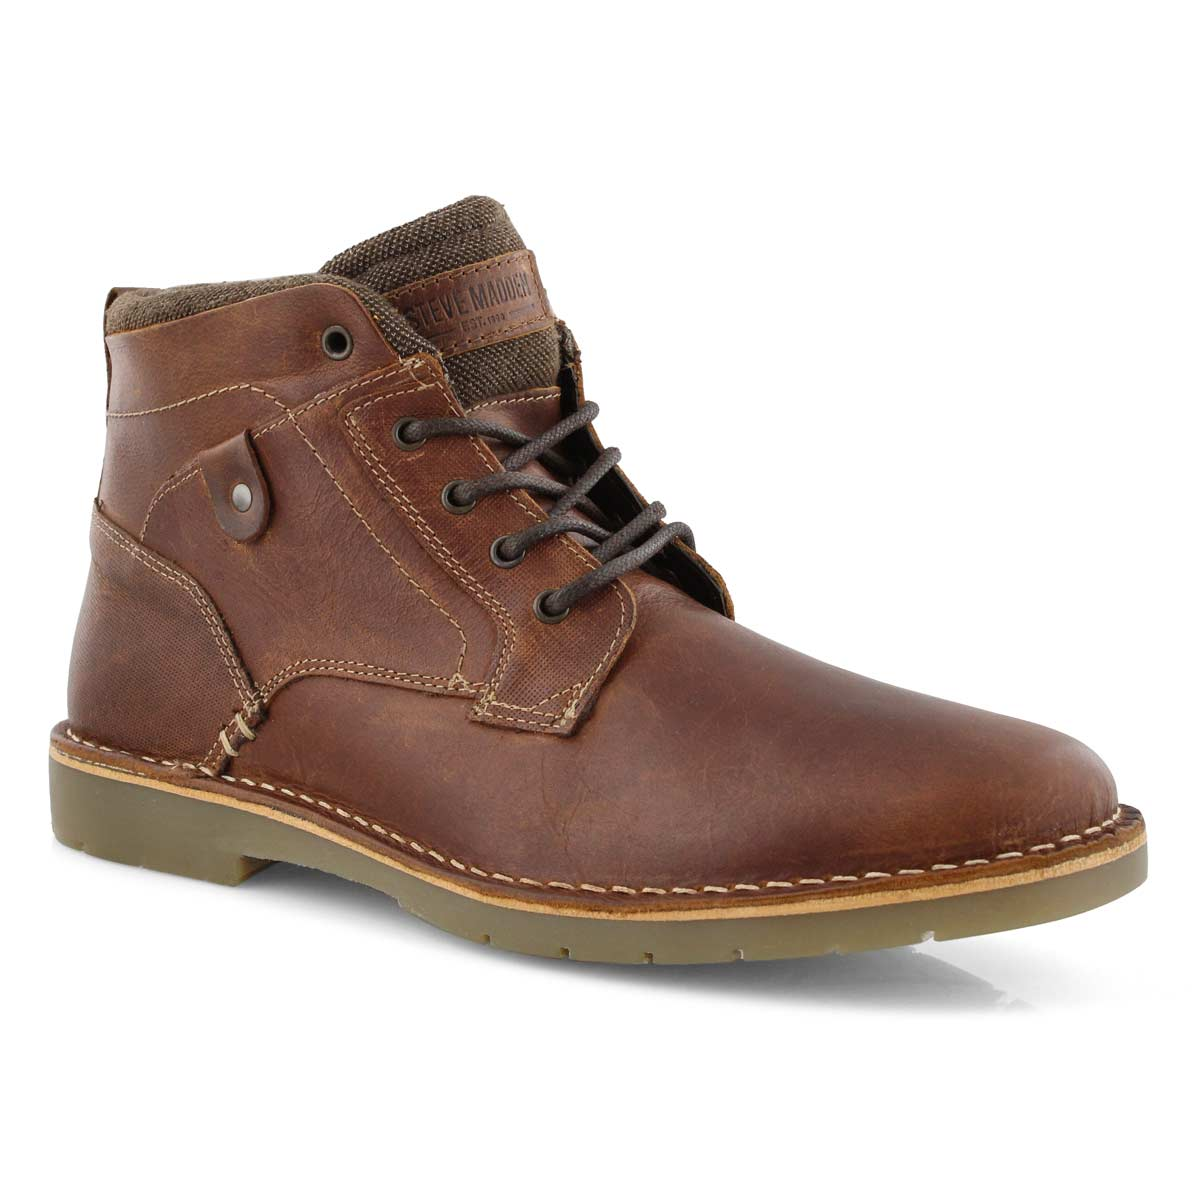 Mns Vulture wood lace up ankle boot